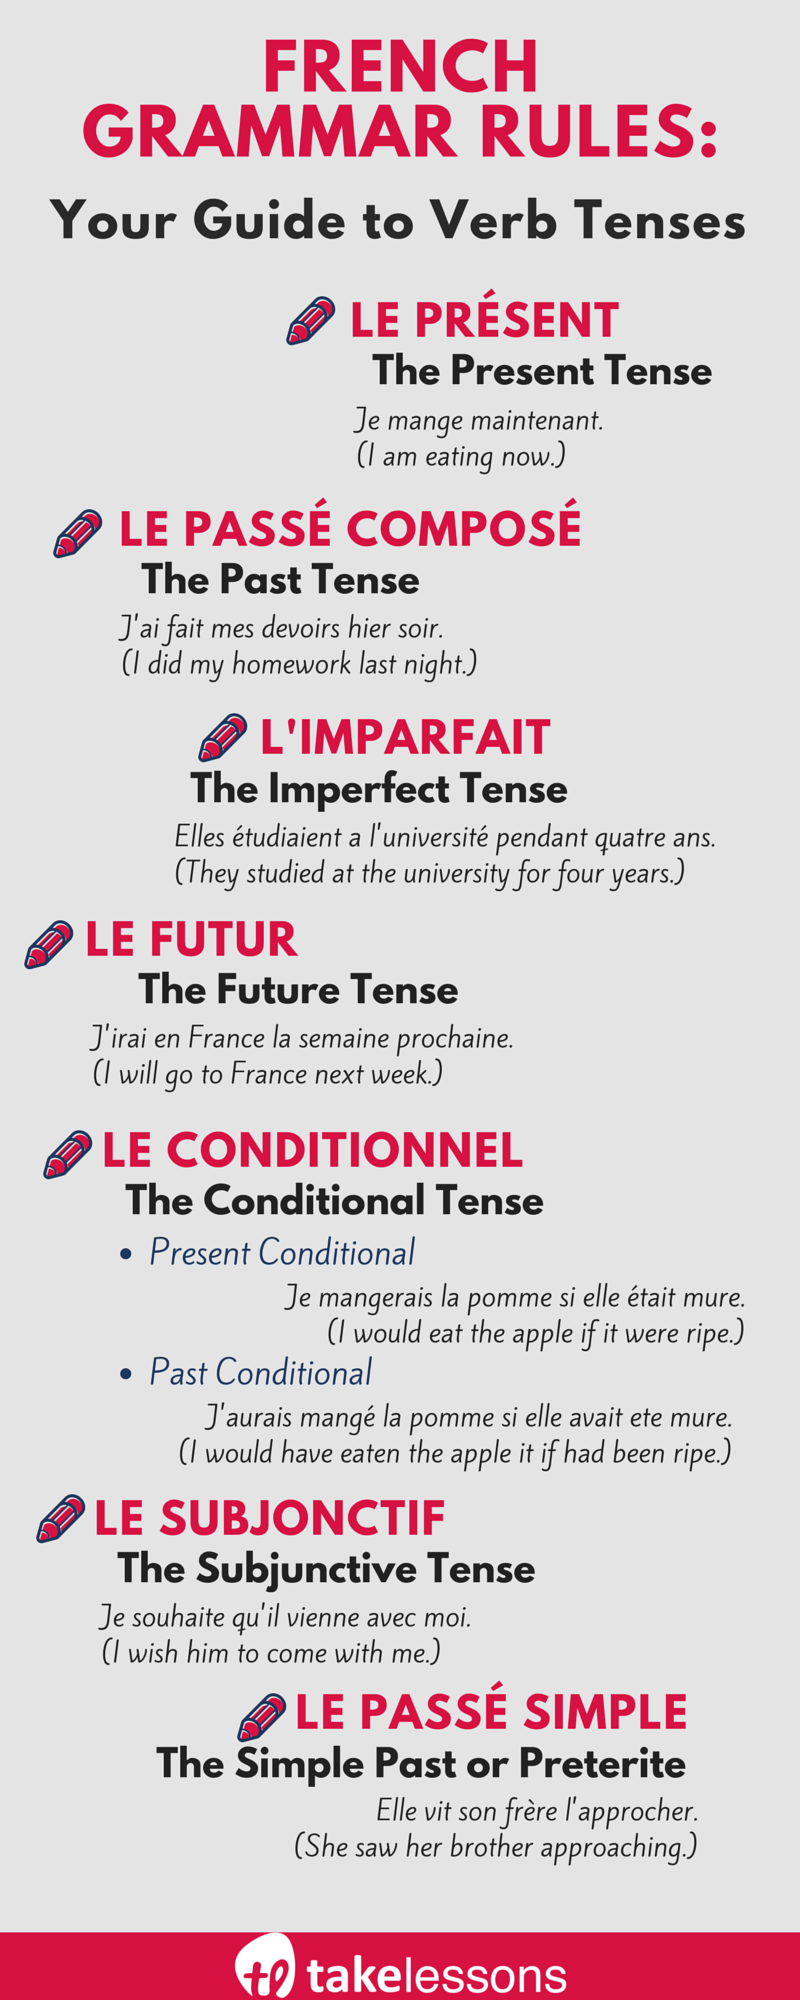 French Grammar Rules Your Guide To Verb Tenses French Language Lessons French Grammar French Phrases [ 2000 x 800 Pixel ]